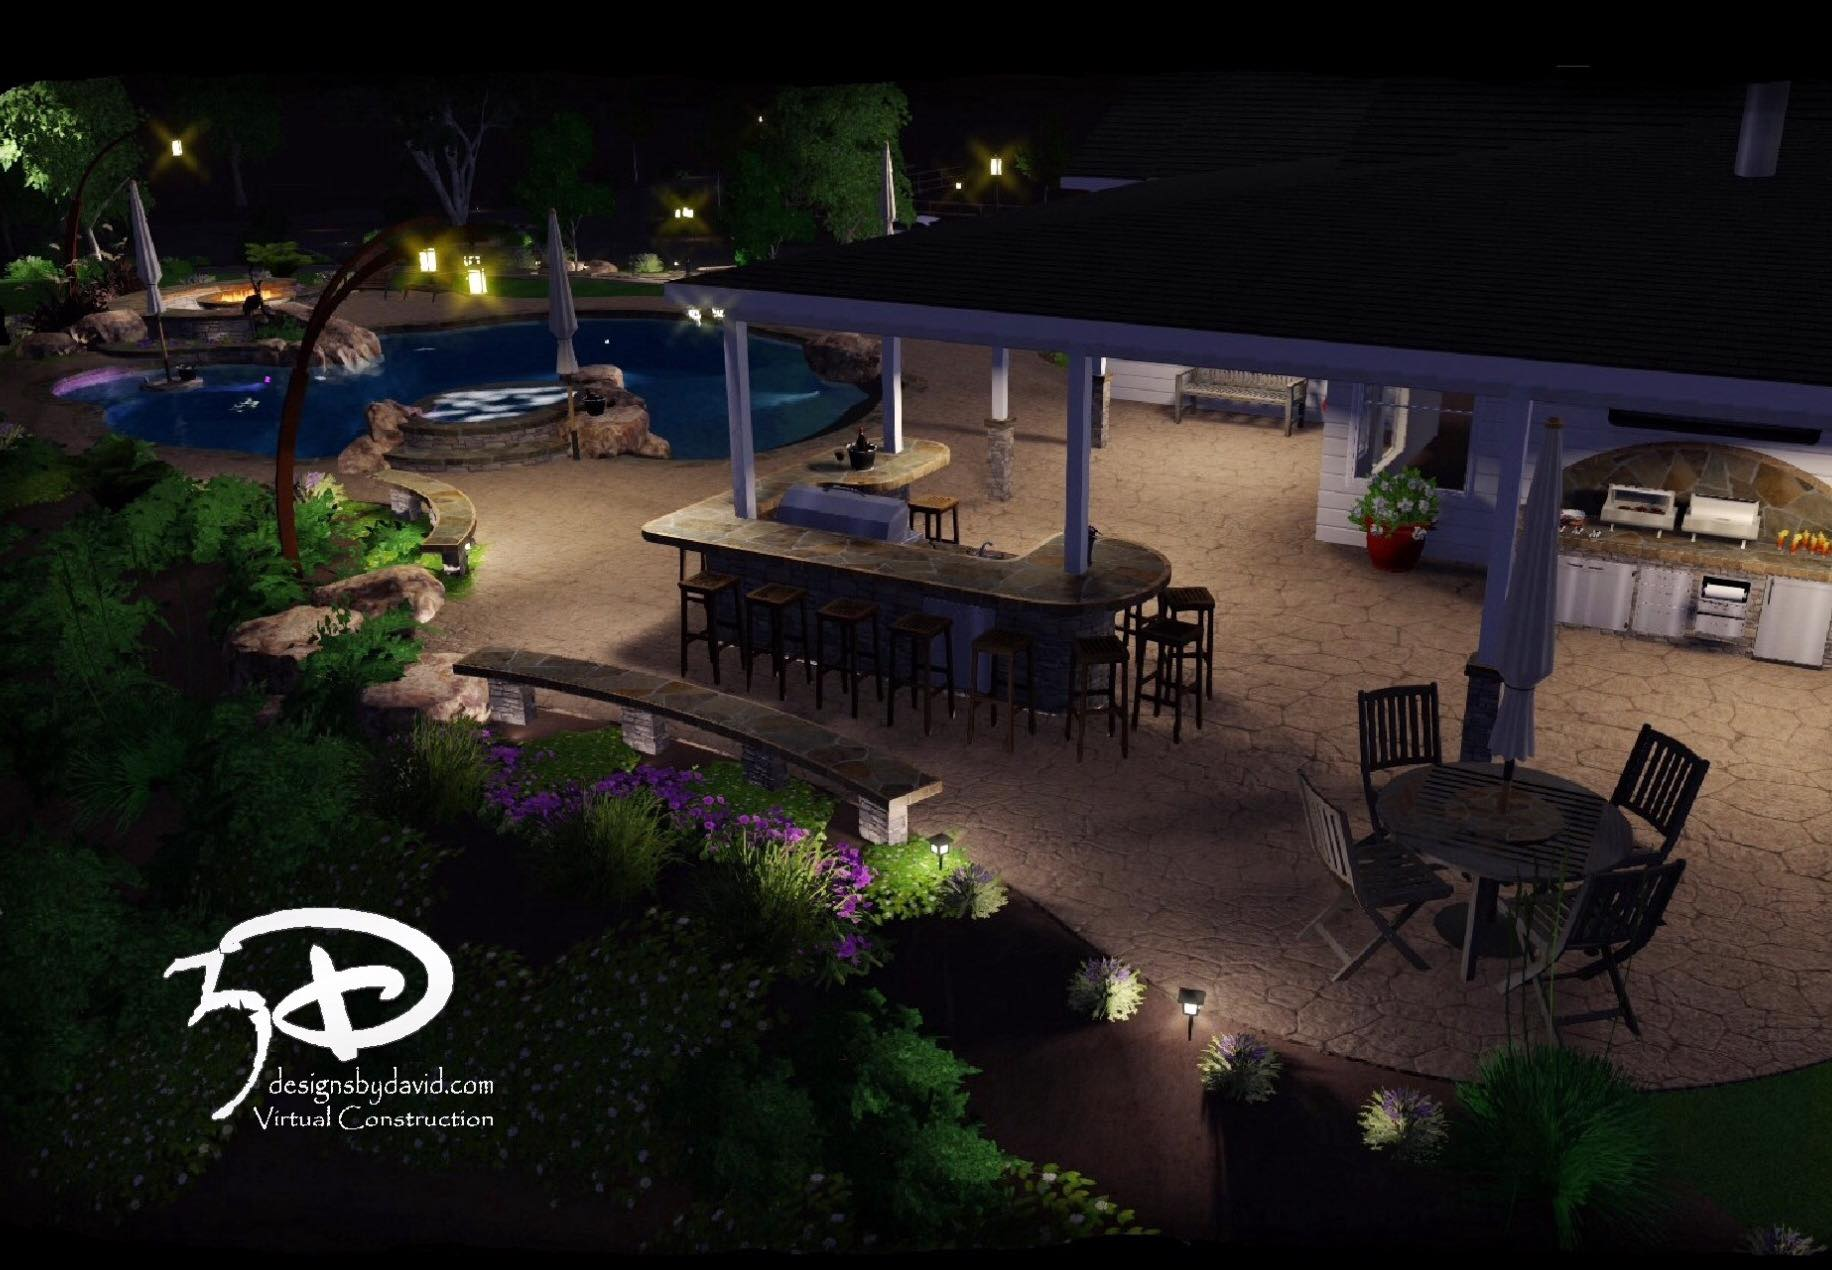 Swimming pool design in madera 3d designs by david for Virtual swimming pool design